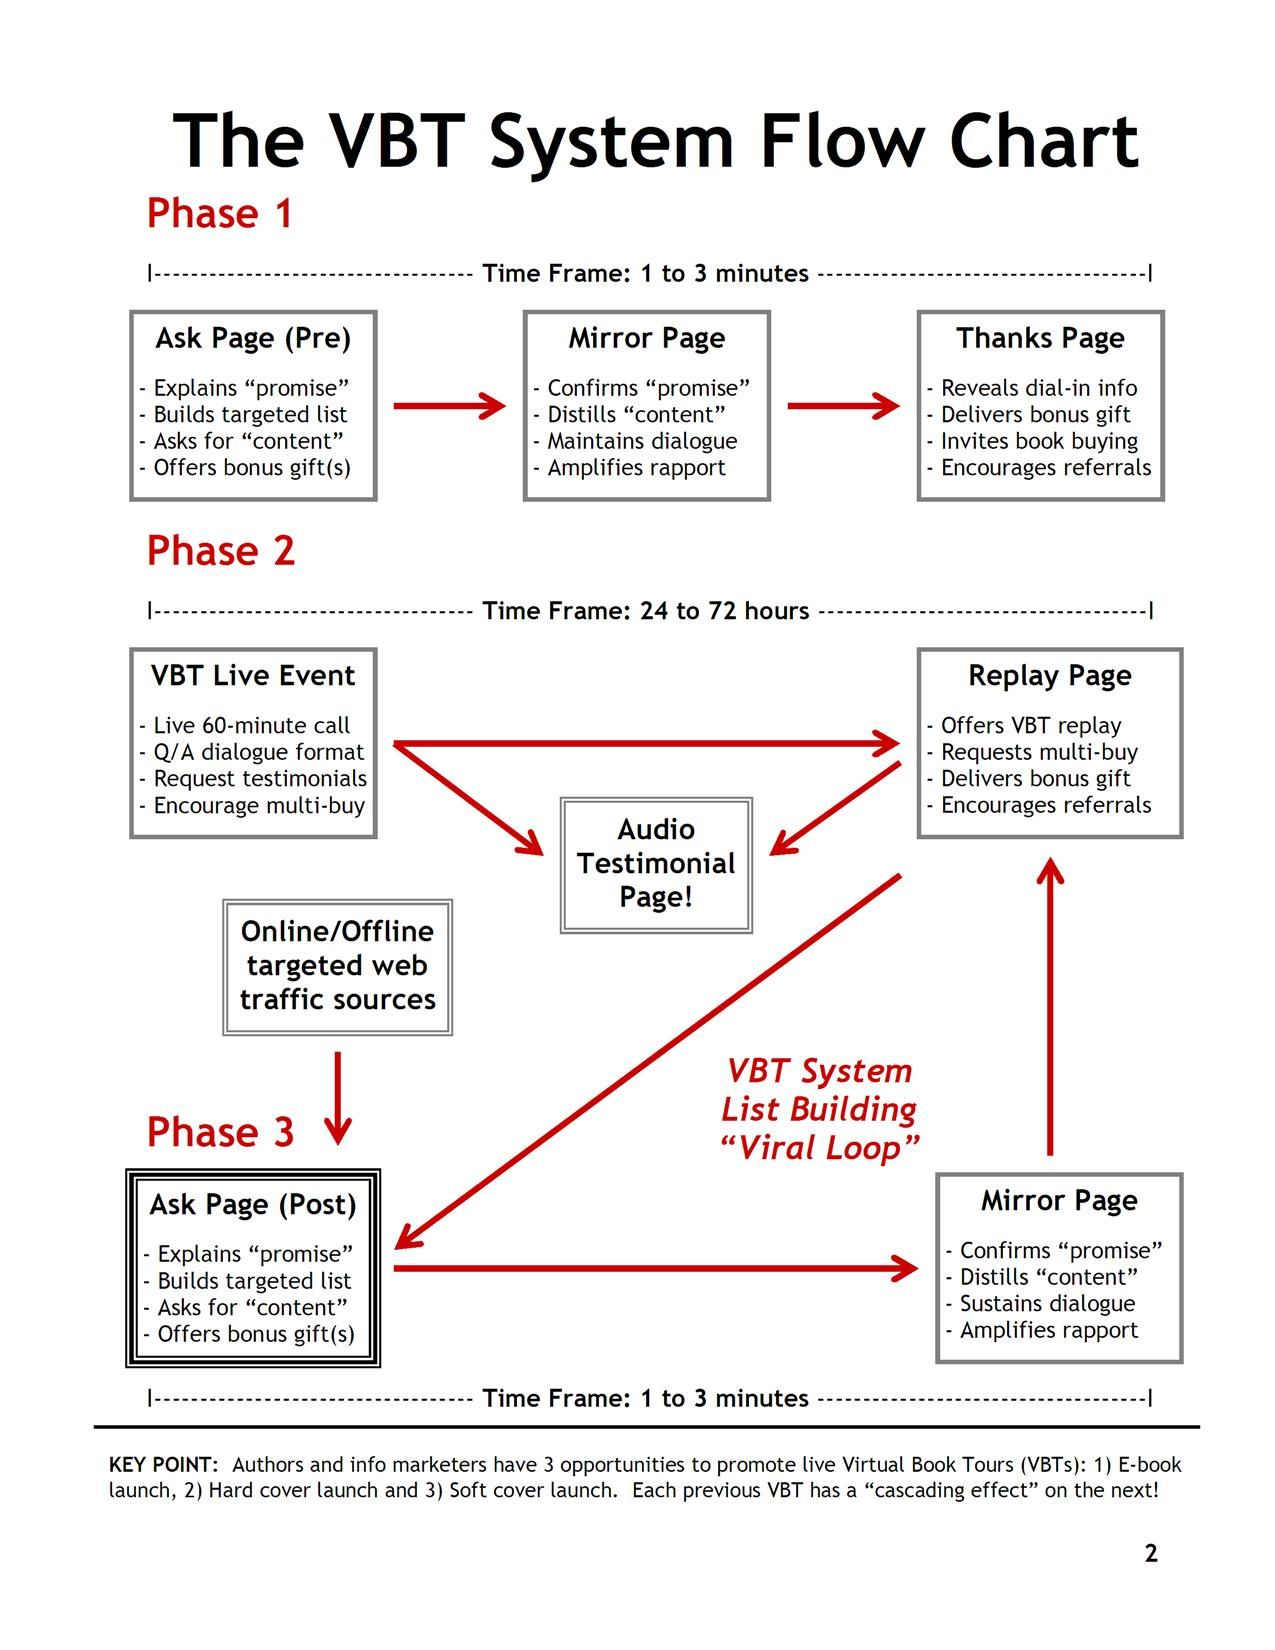 How to write and publish your book starting today vbtflowchart virtual book tour flow chart nvjuhfo Images